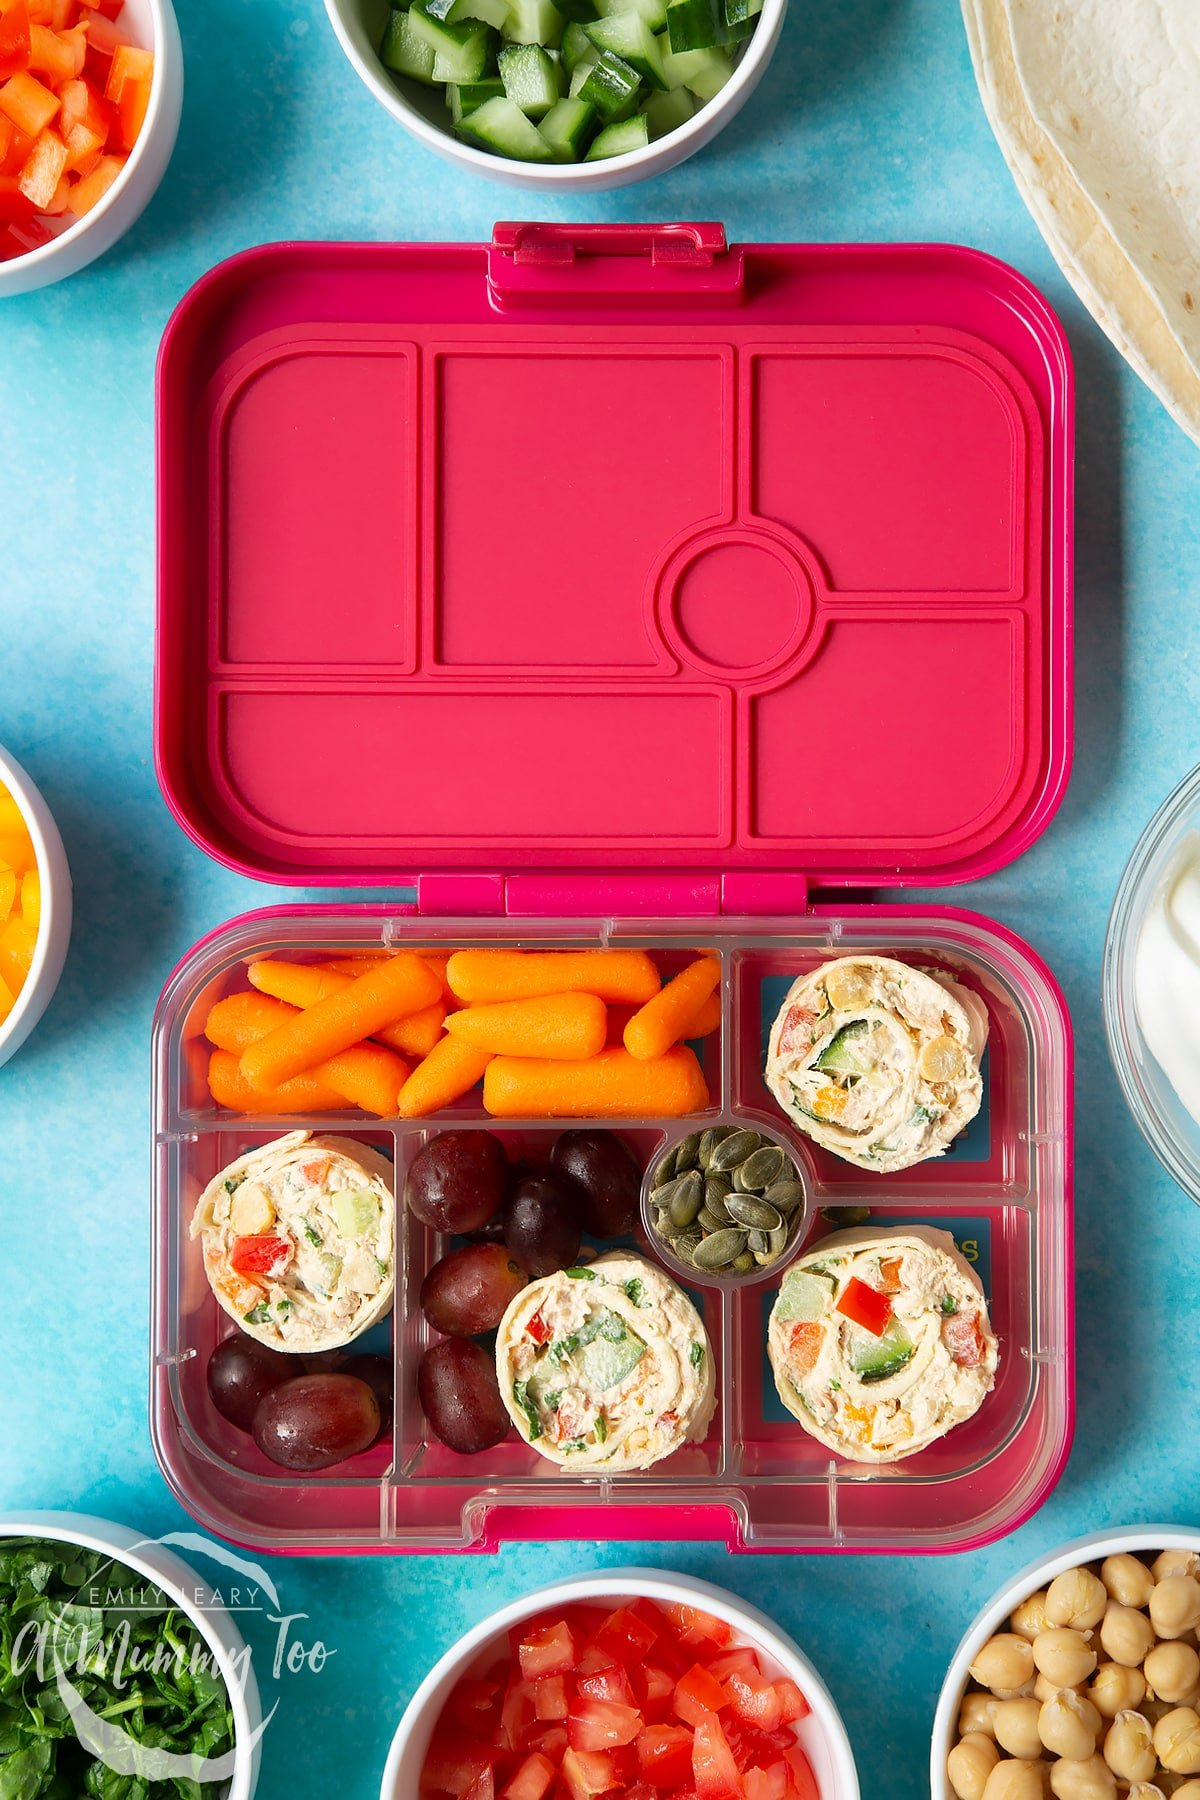 Tuna pinwheels in a lunchbox with fresh fruit and veg.